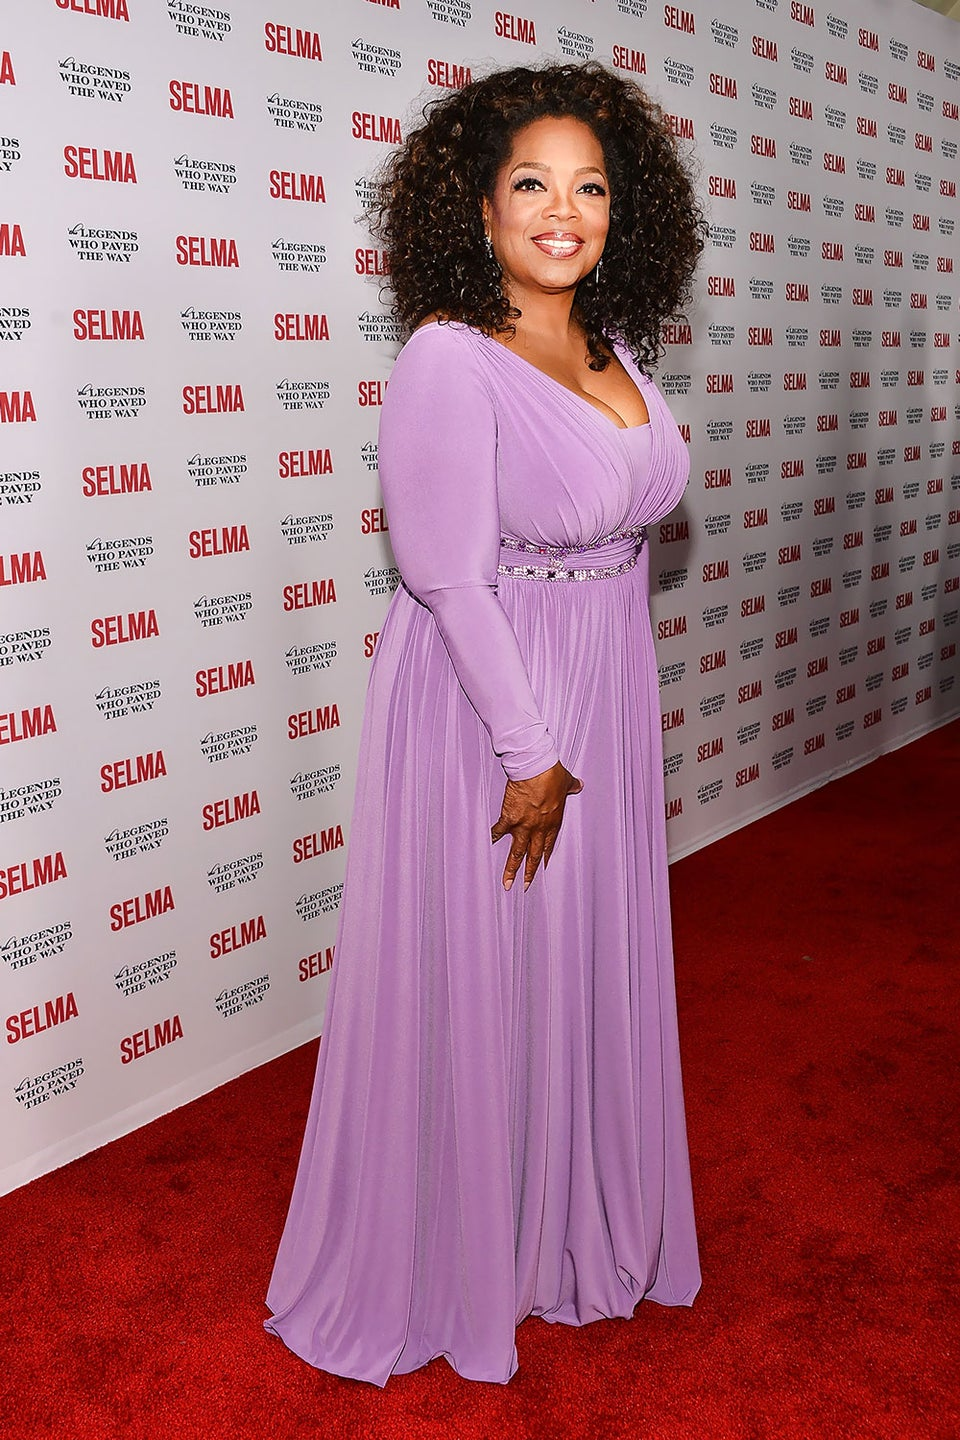 Oprah Opens Up on Ferguson, Thinks Activists Can Learn a Lot from 'Selma'